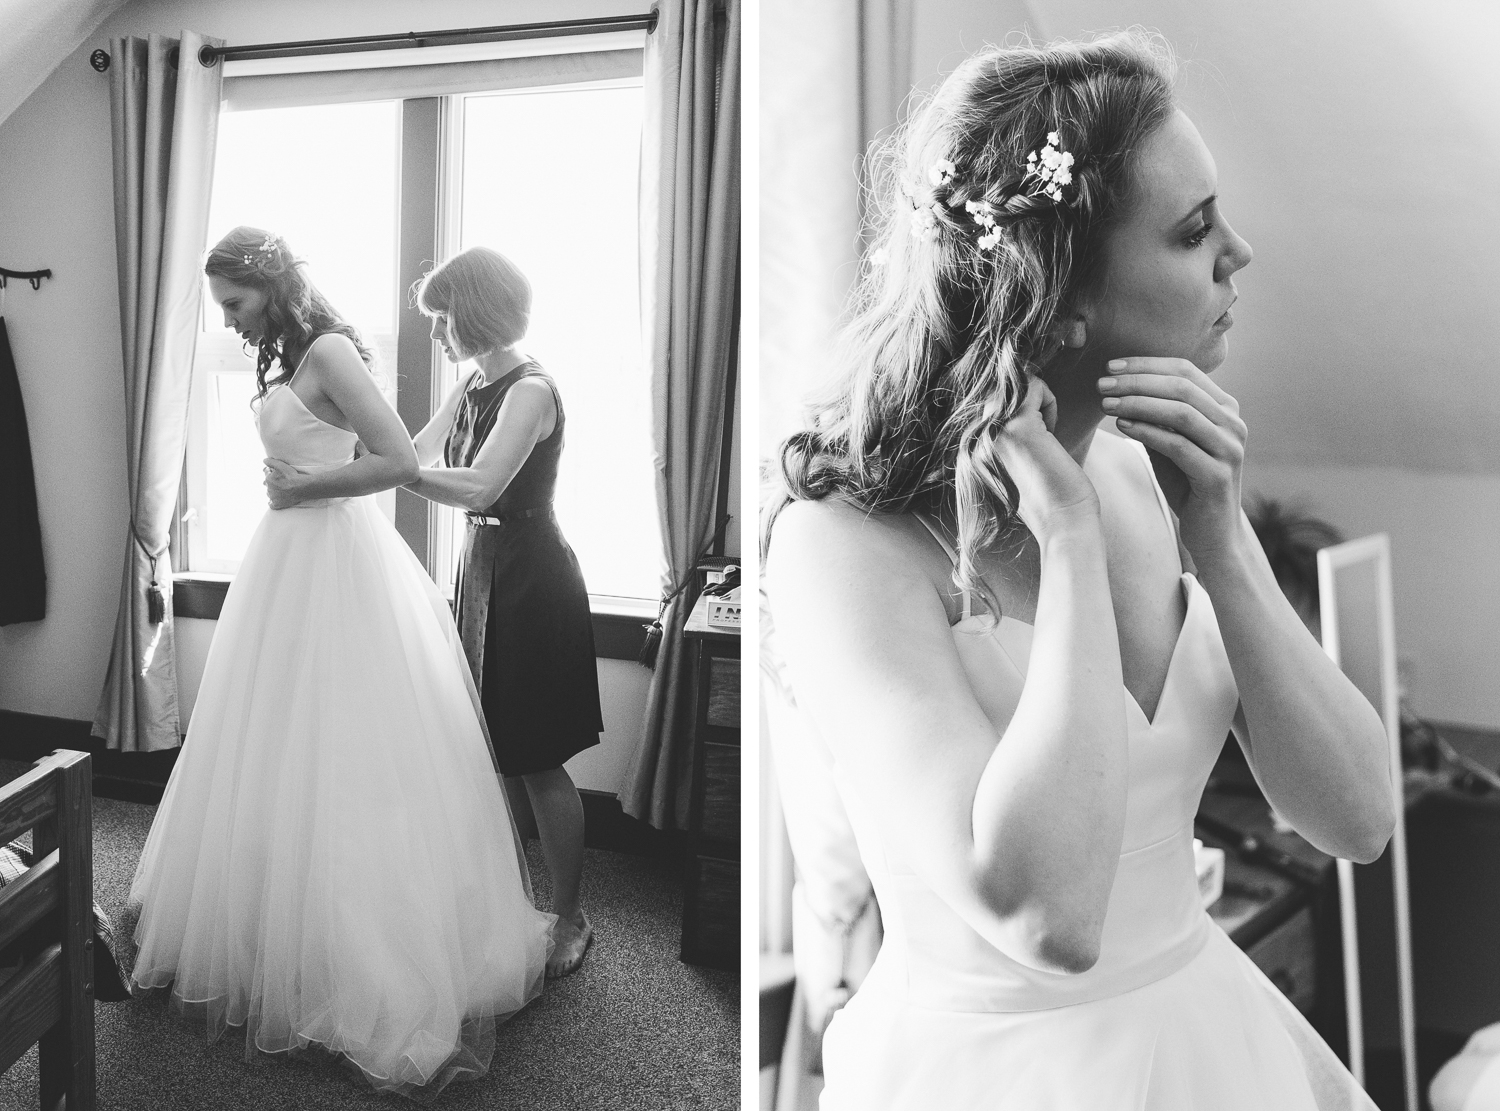 lethbridge-wedding-photographer-love-and-be-loved-photography-dan-tynnea-picture-image-photo-132.jpg